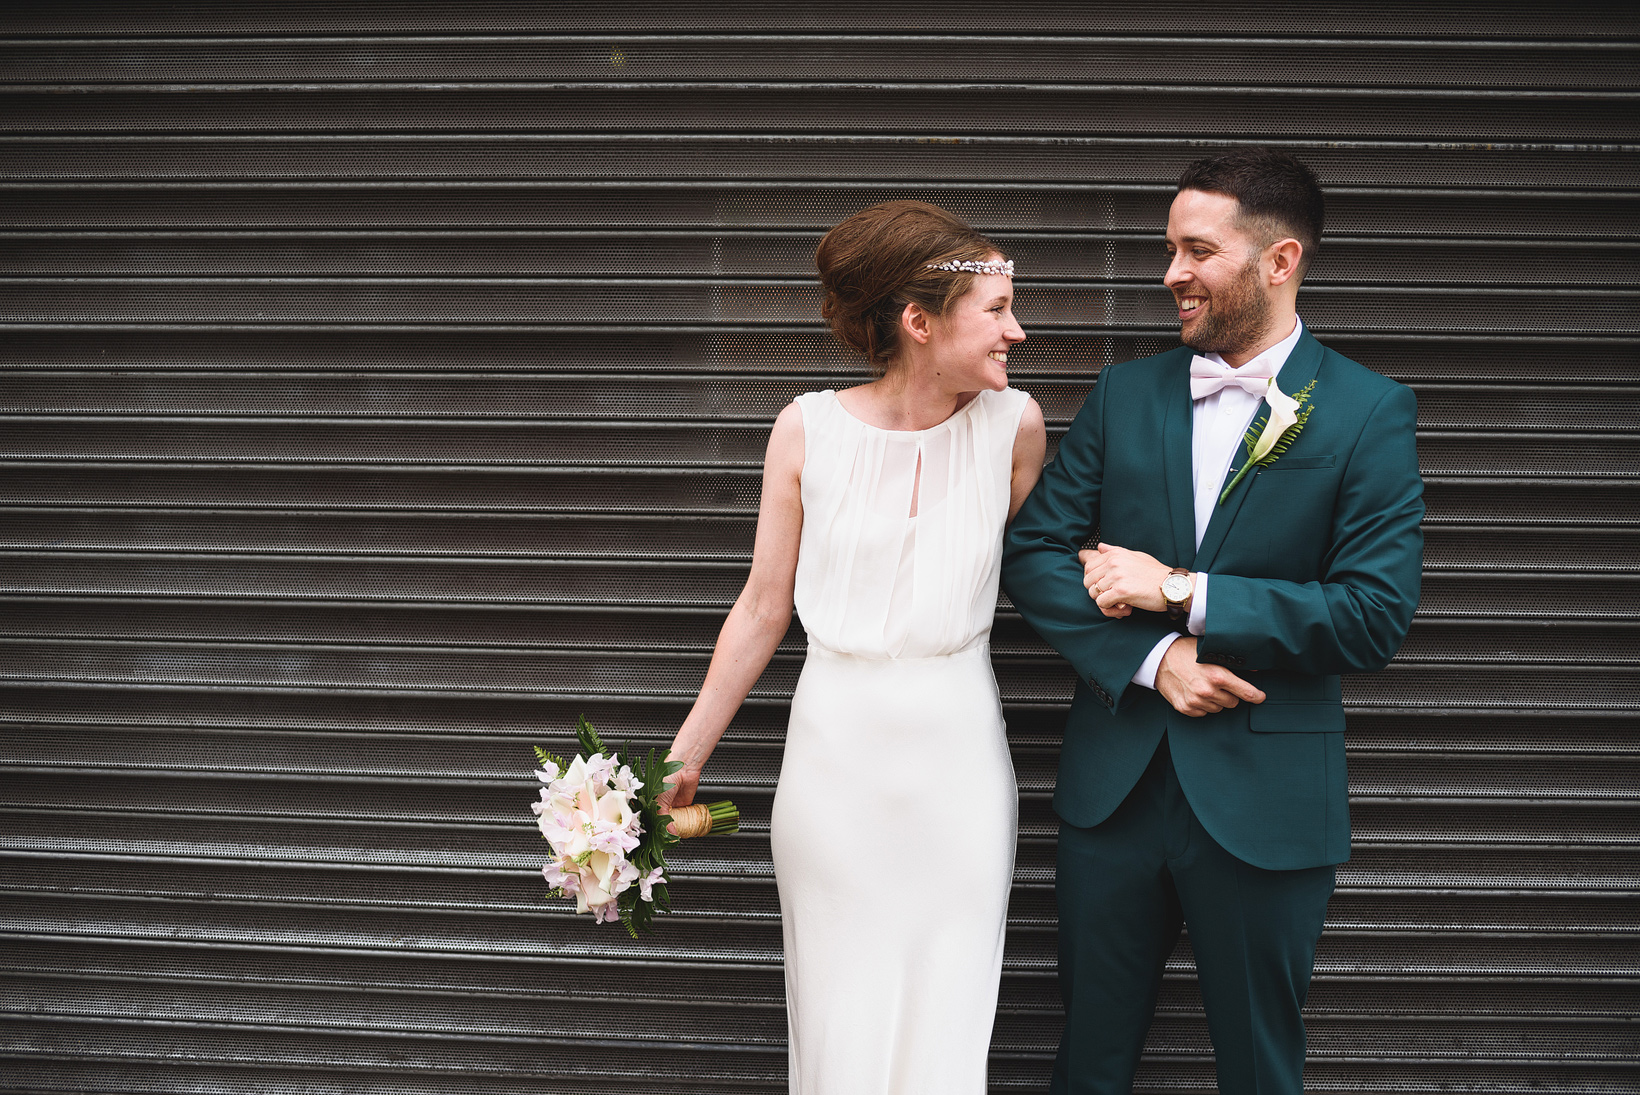 Green Wedding Suit